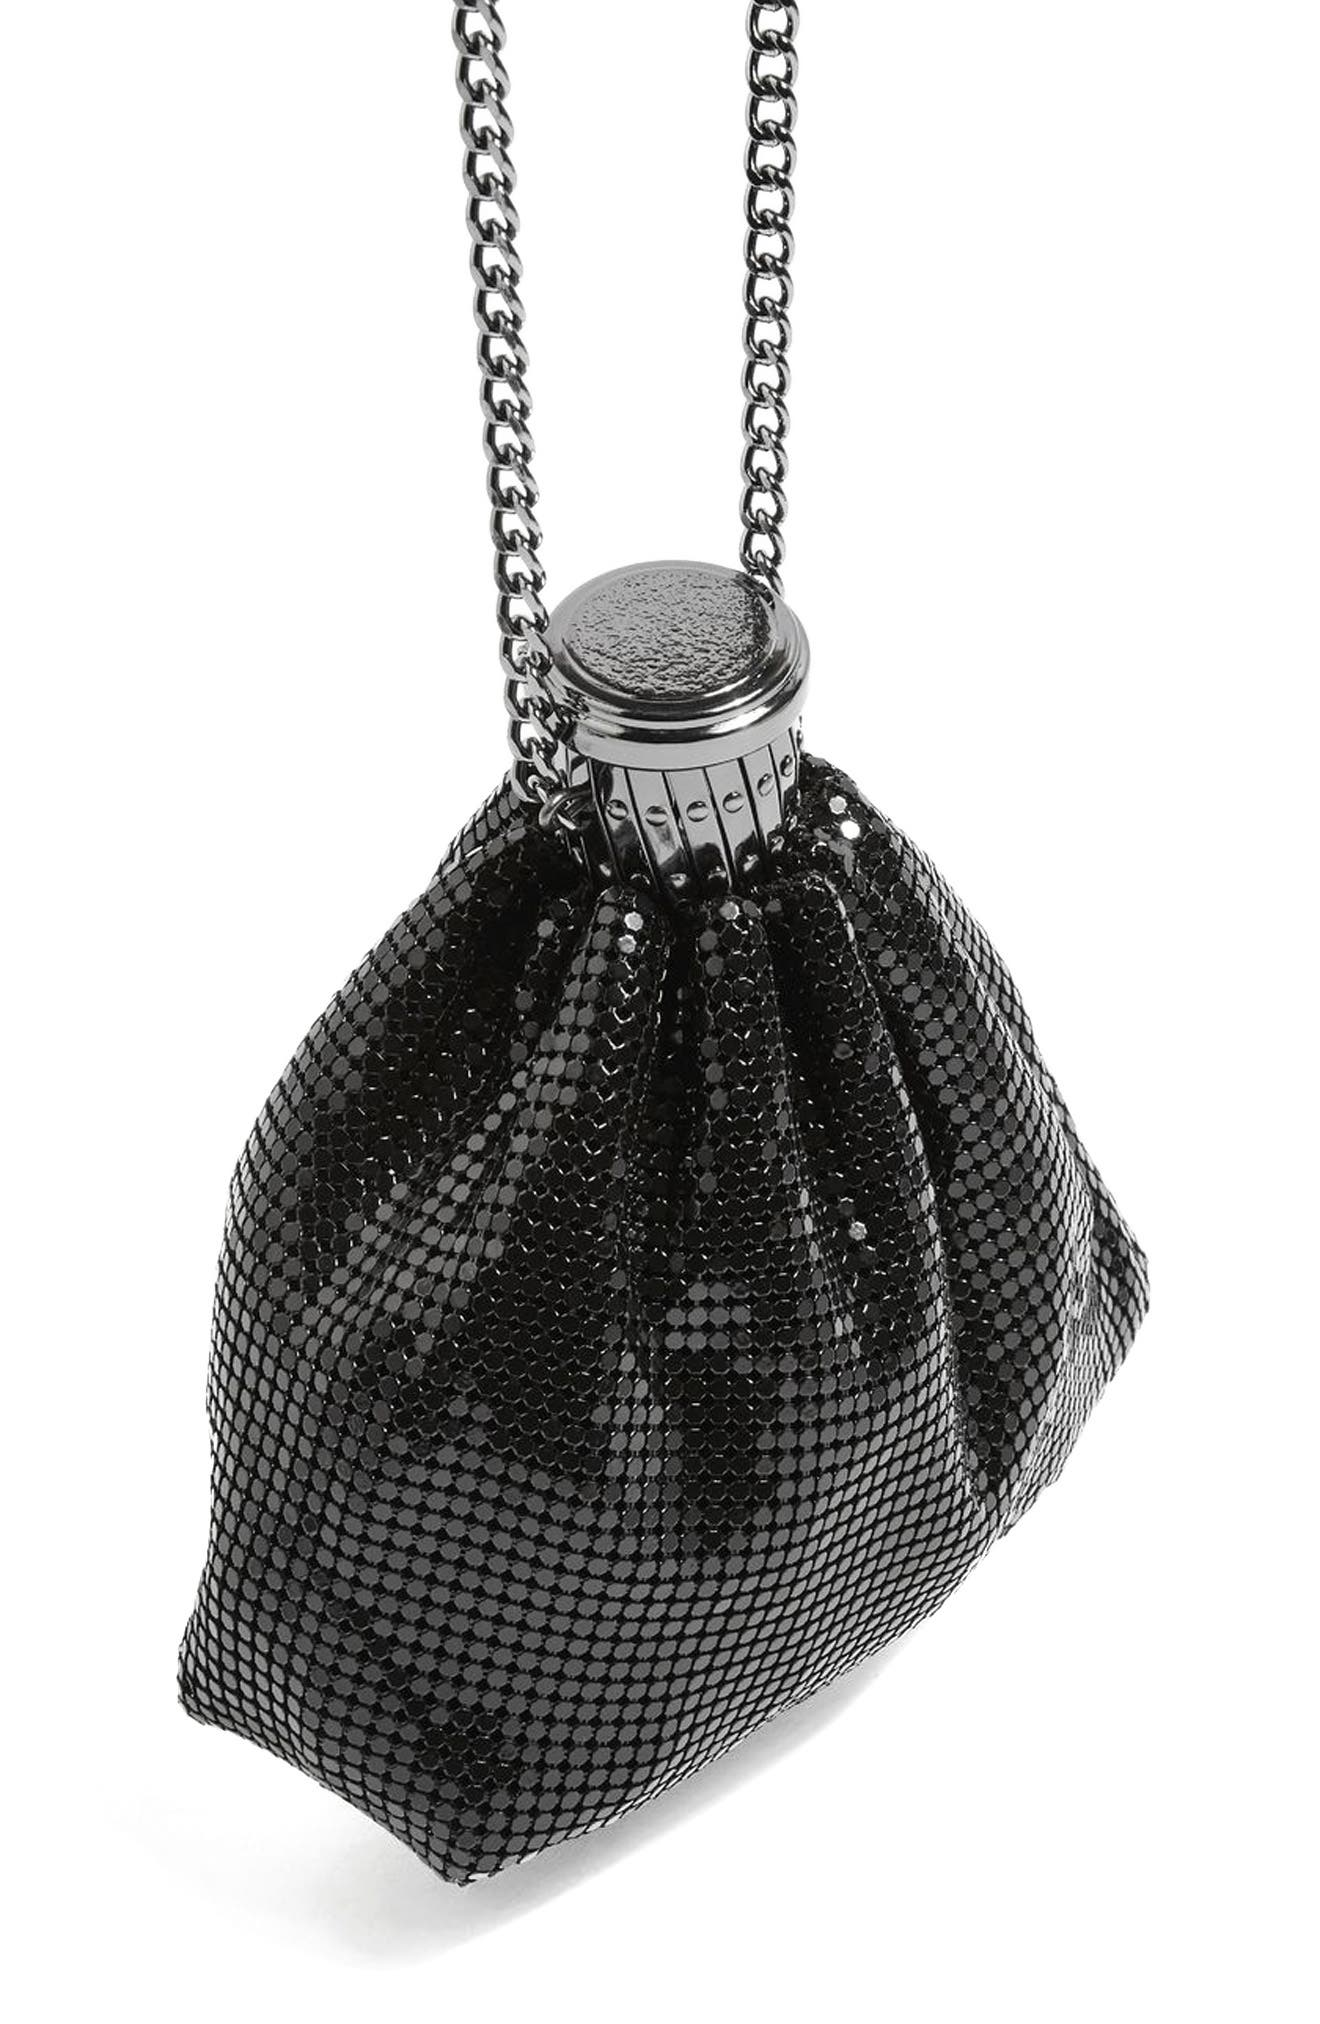 Chain Mail Pouch Crossbody Bag,                         Main,                         color, Silver